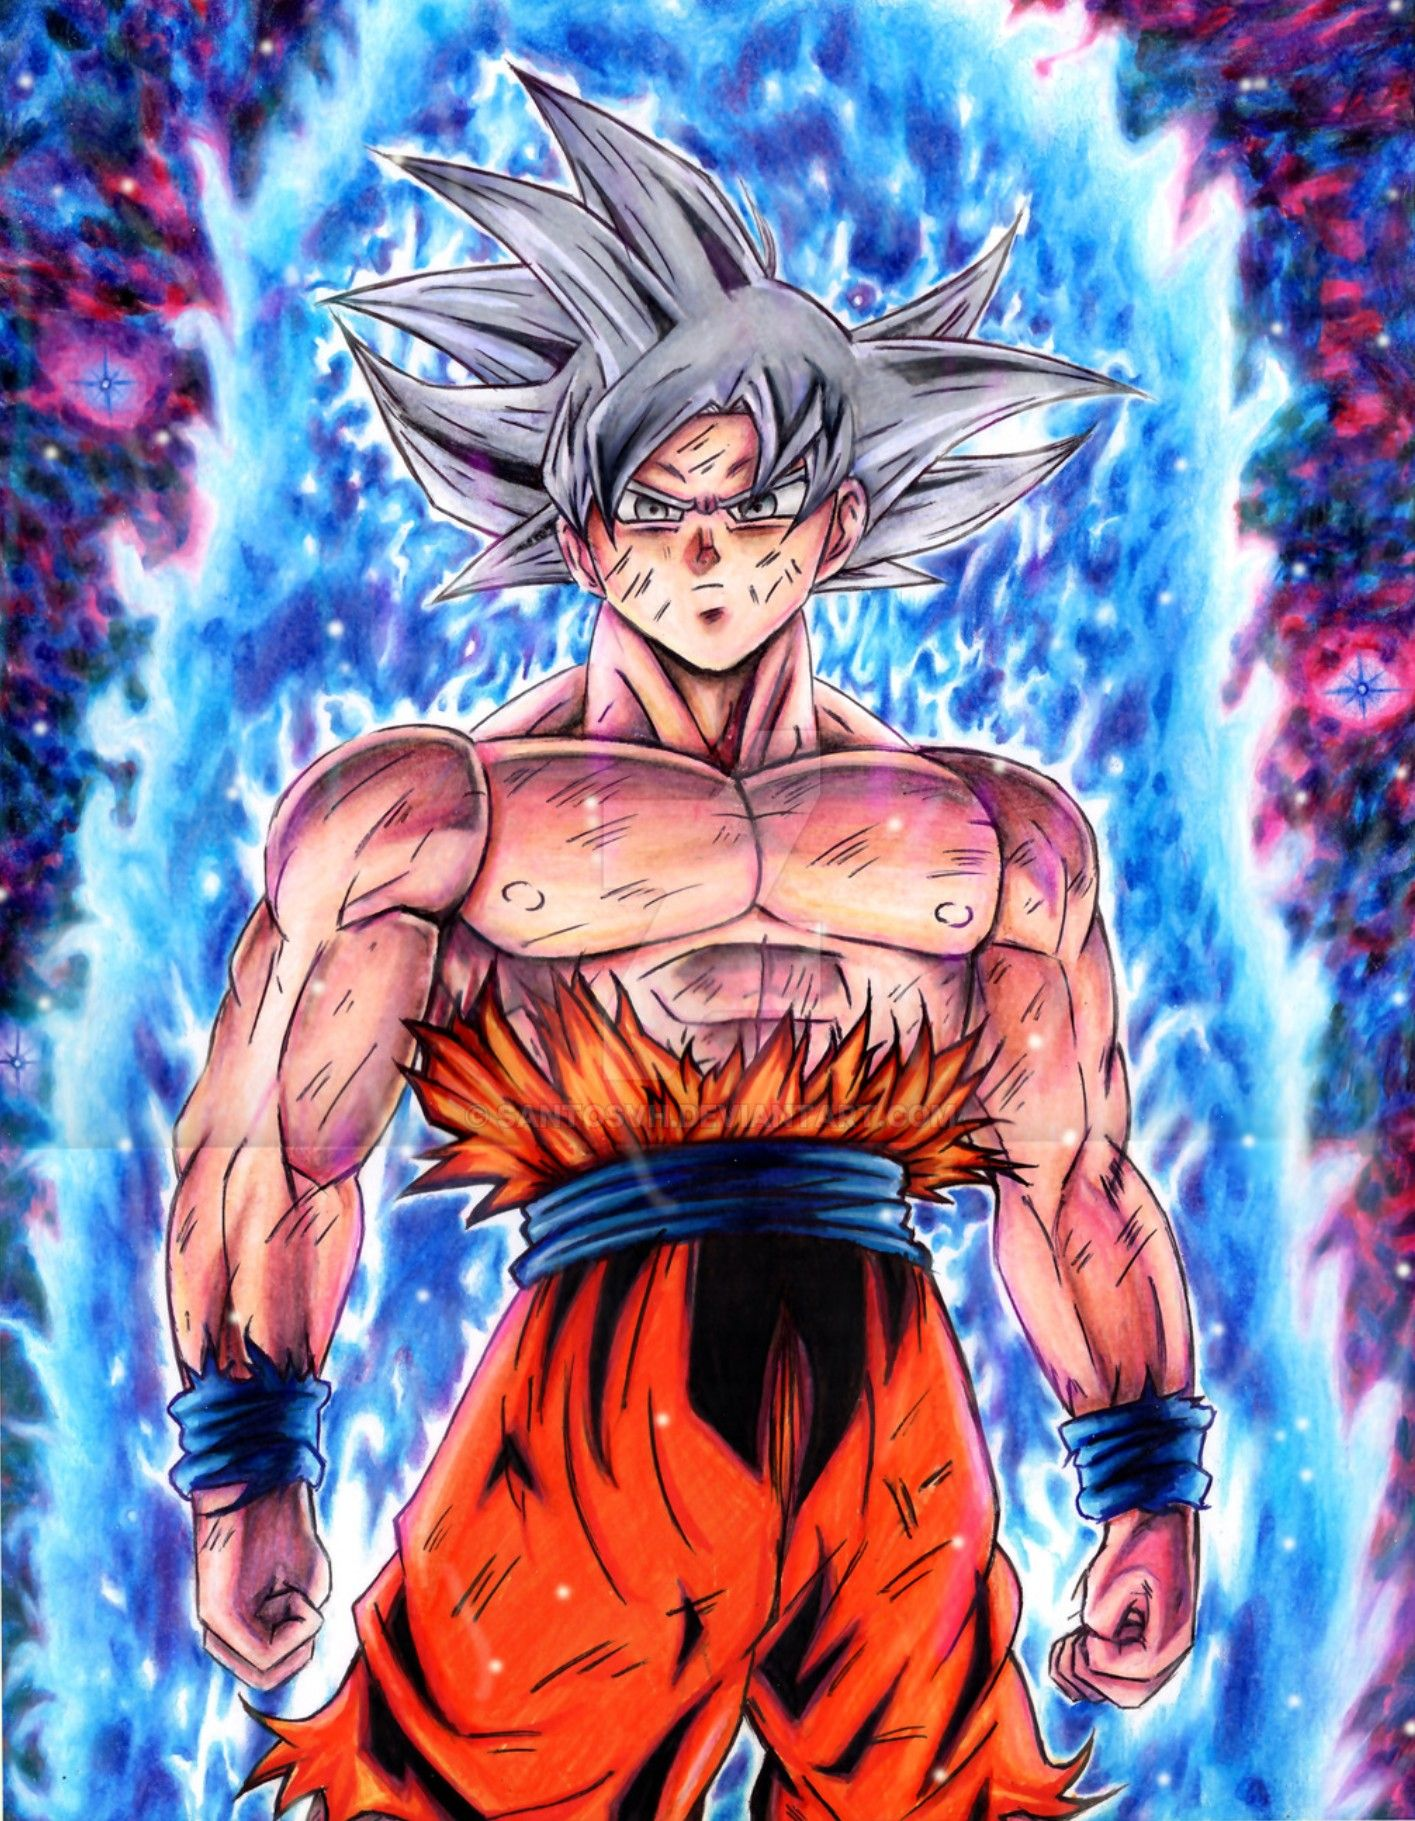 Goku Ultra Instinct Mastered Dragon Ball Super Anime Dragon Ball Super Dragon Ball Super Art Dragon Ball Goku